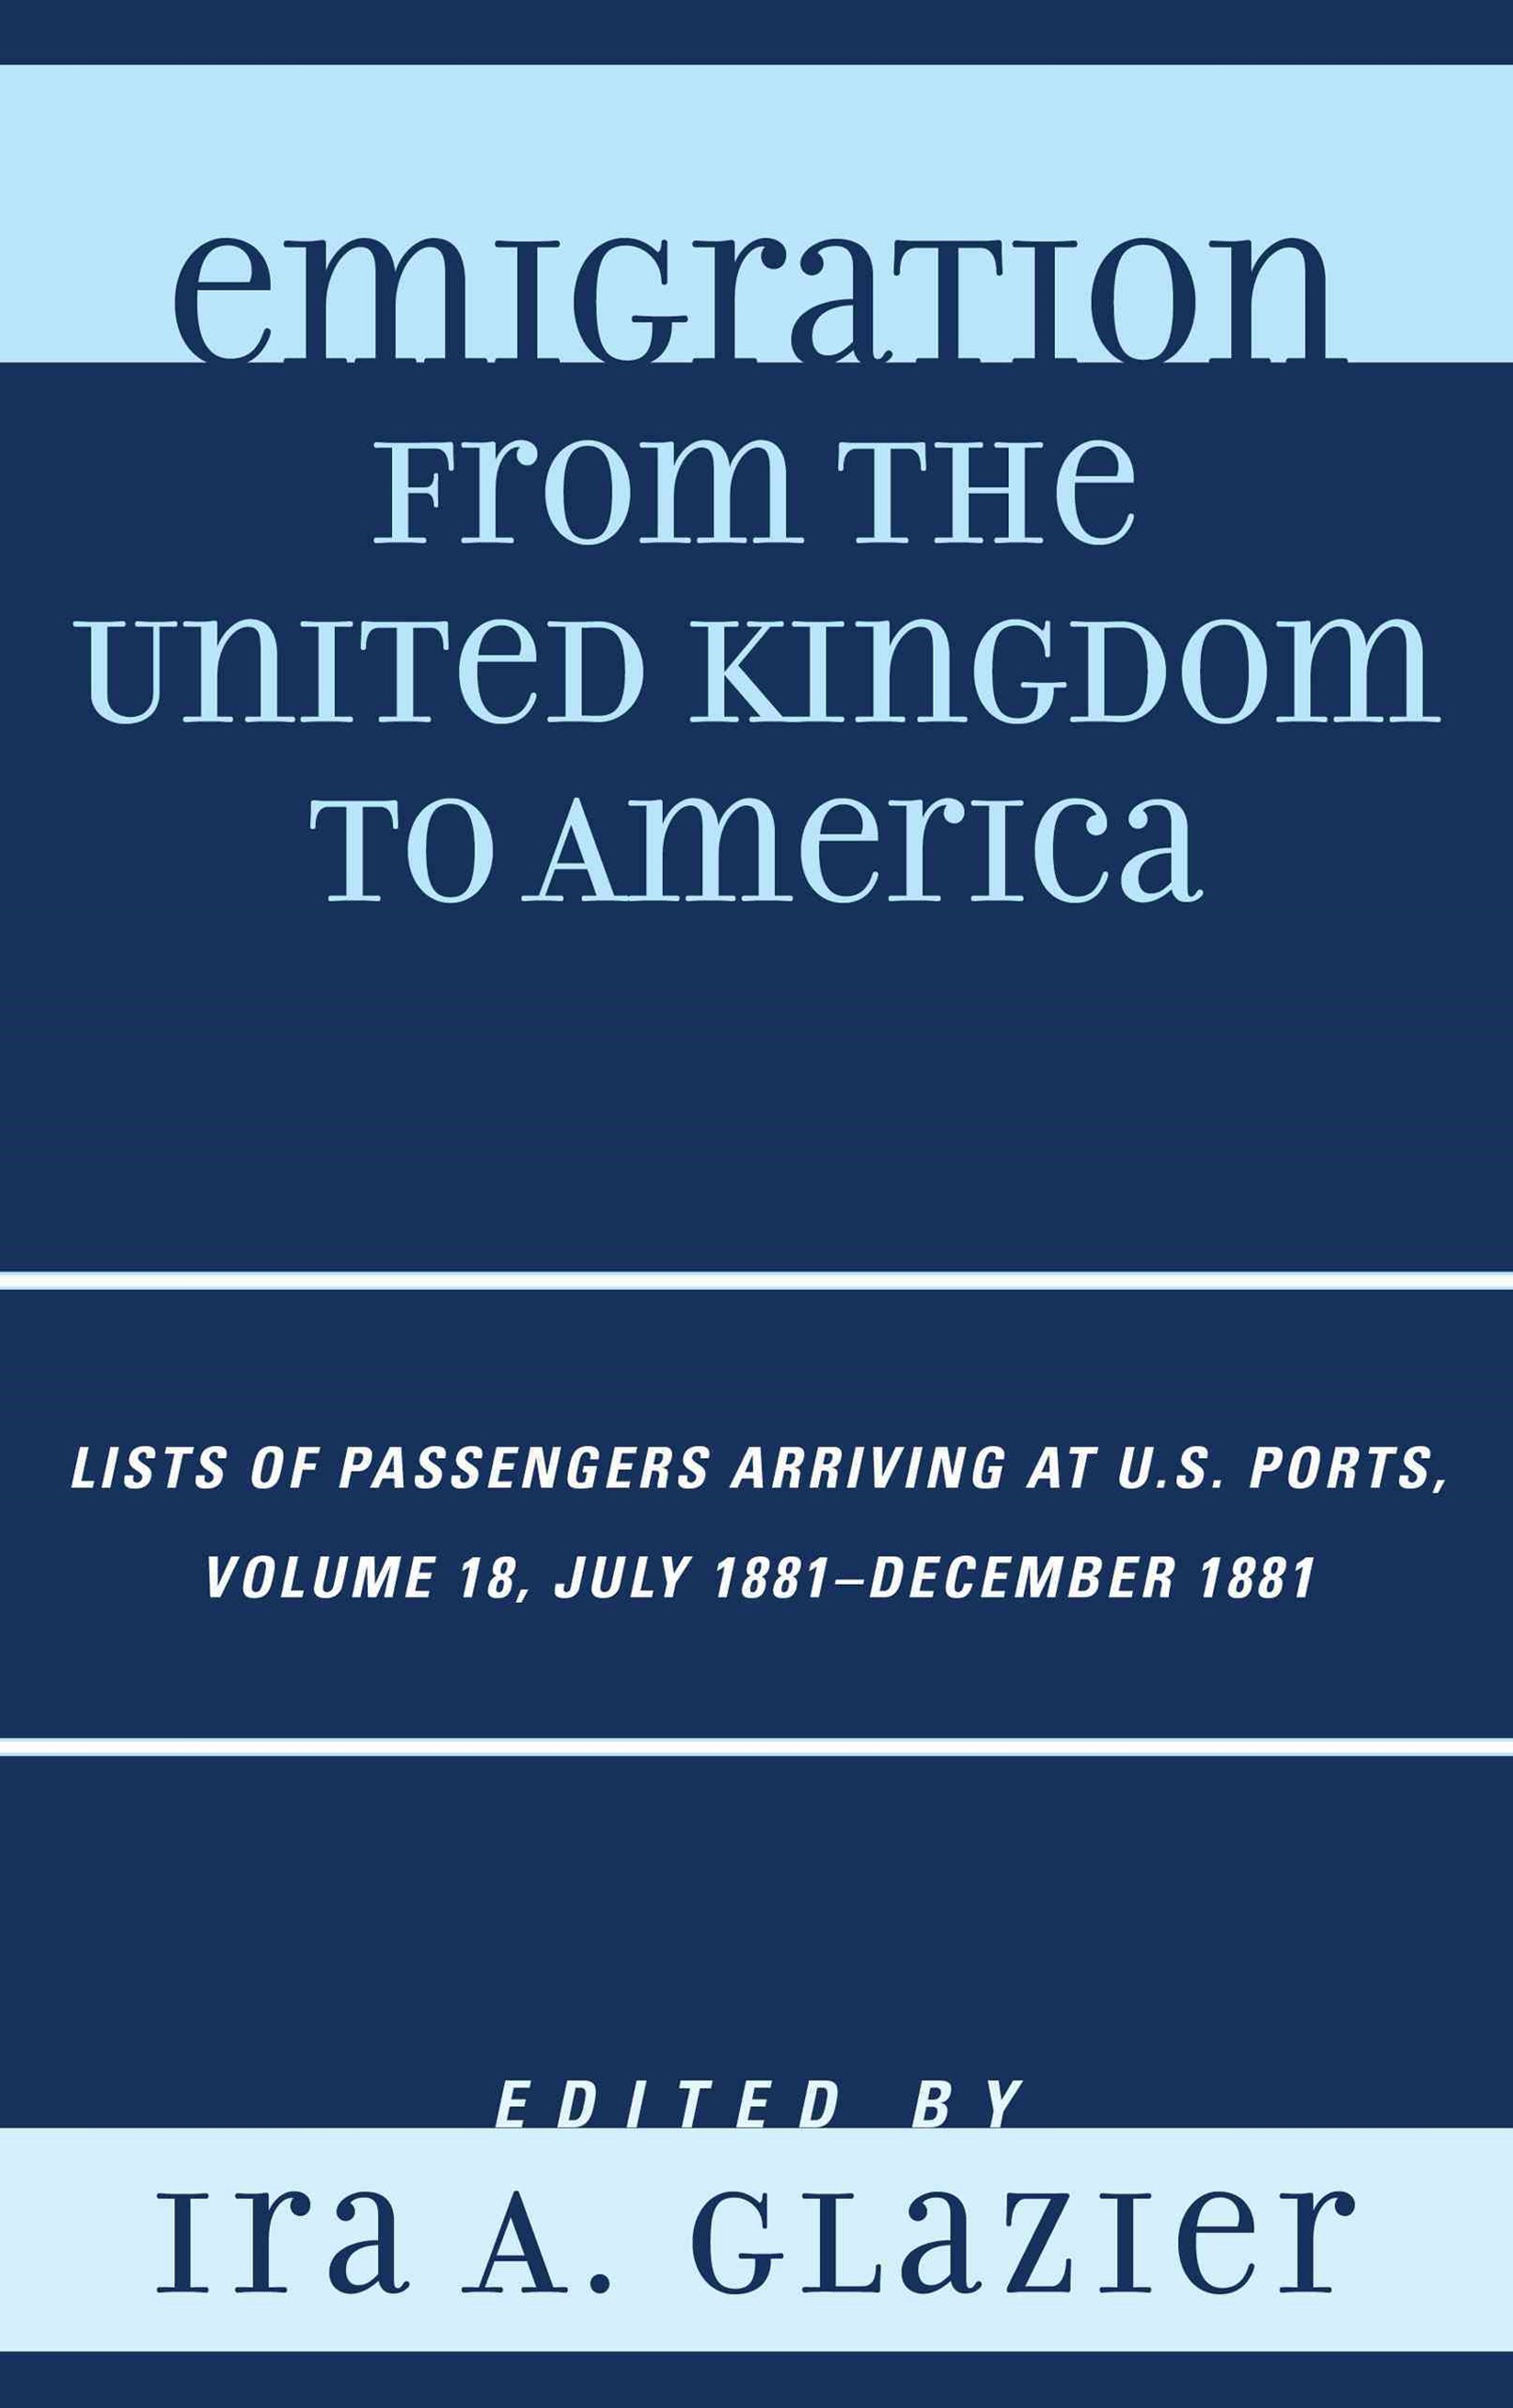 Emigration from the United Kingdom to America